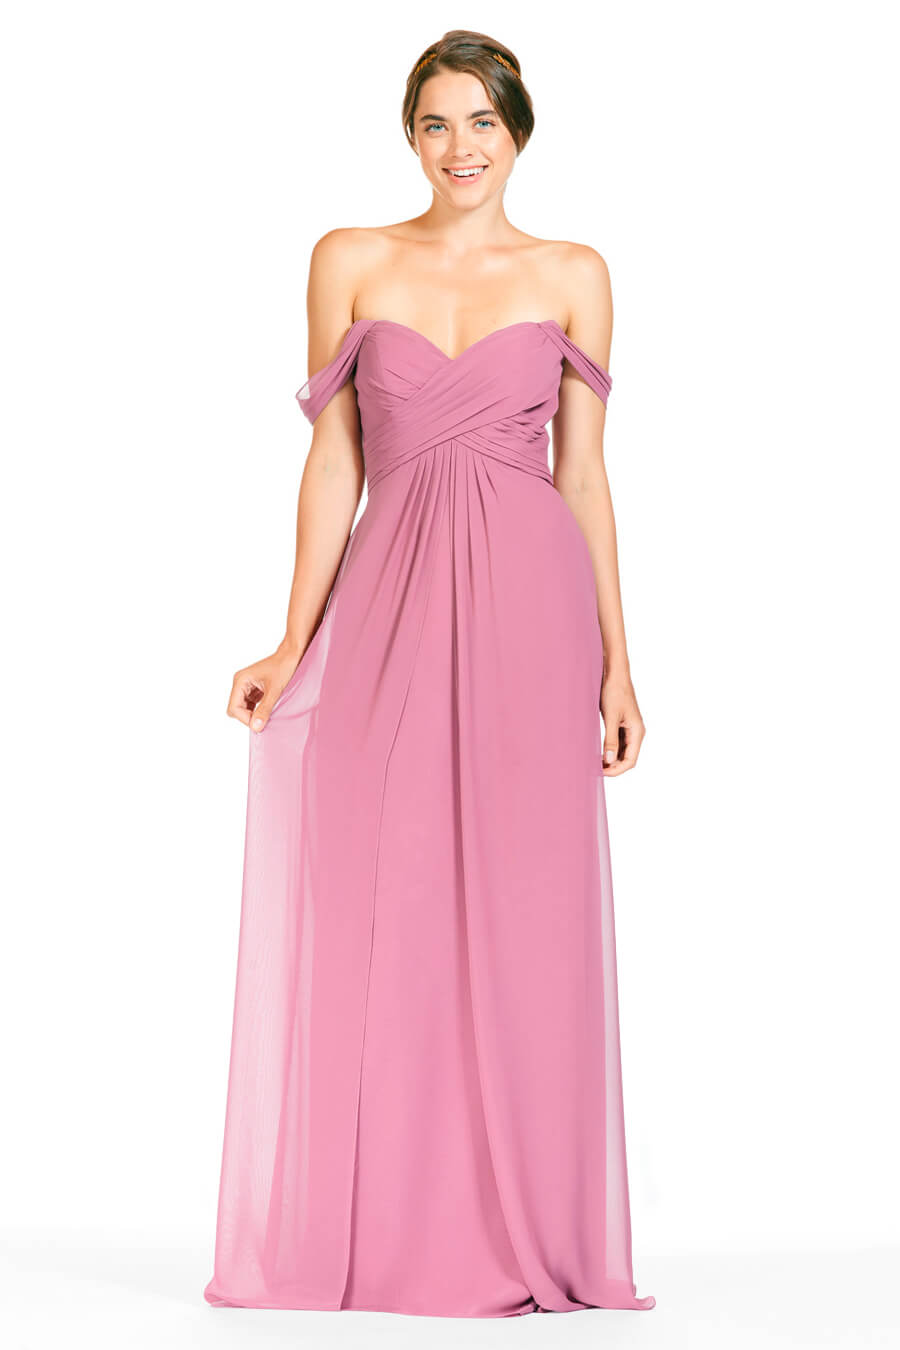 Bridesmaid Dresses, Evening Gowns & Flower Girl Dresses | Bari Jay